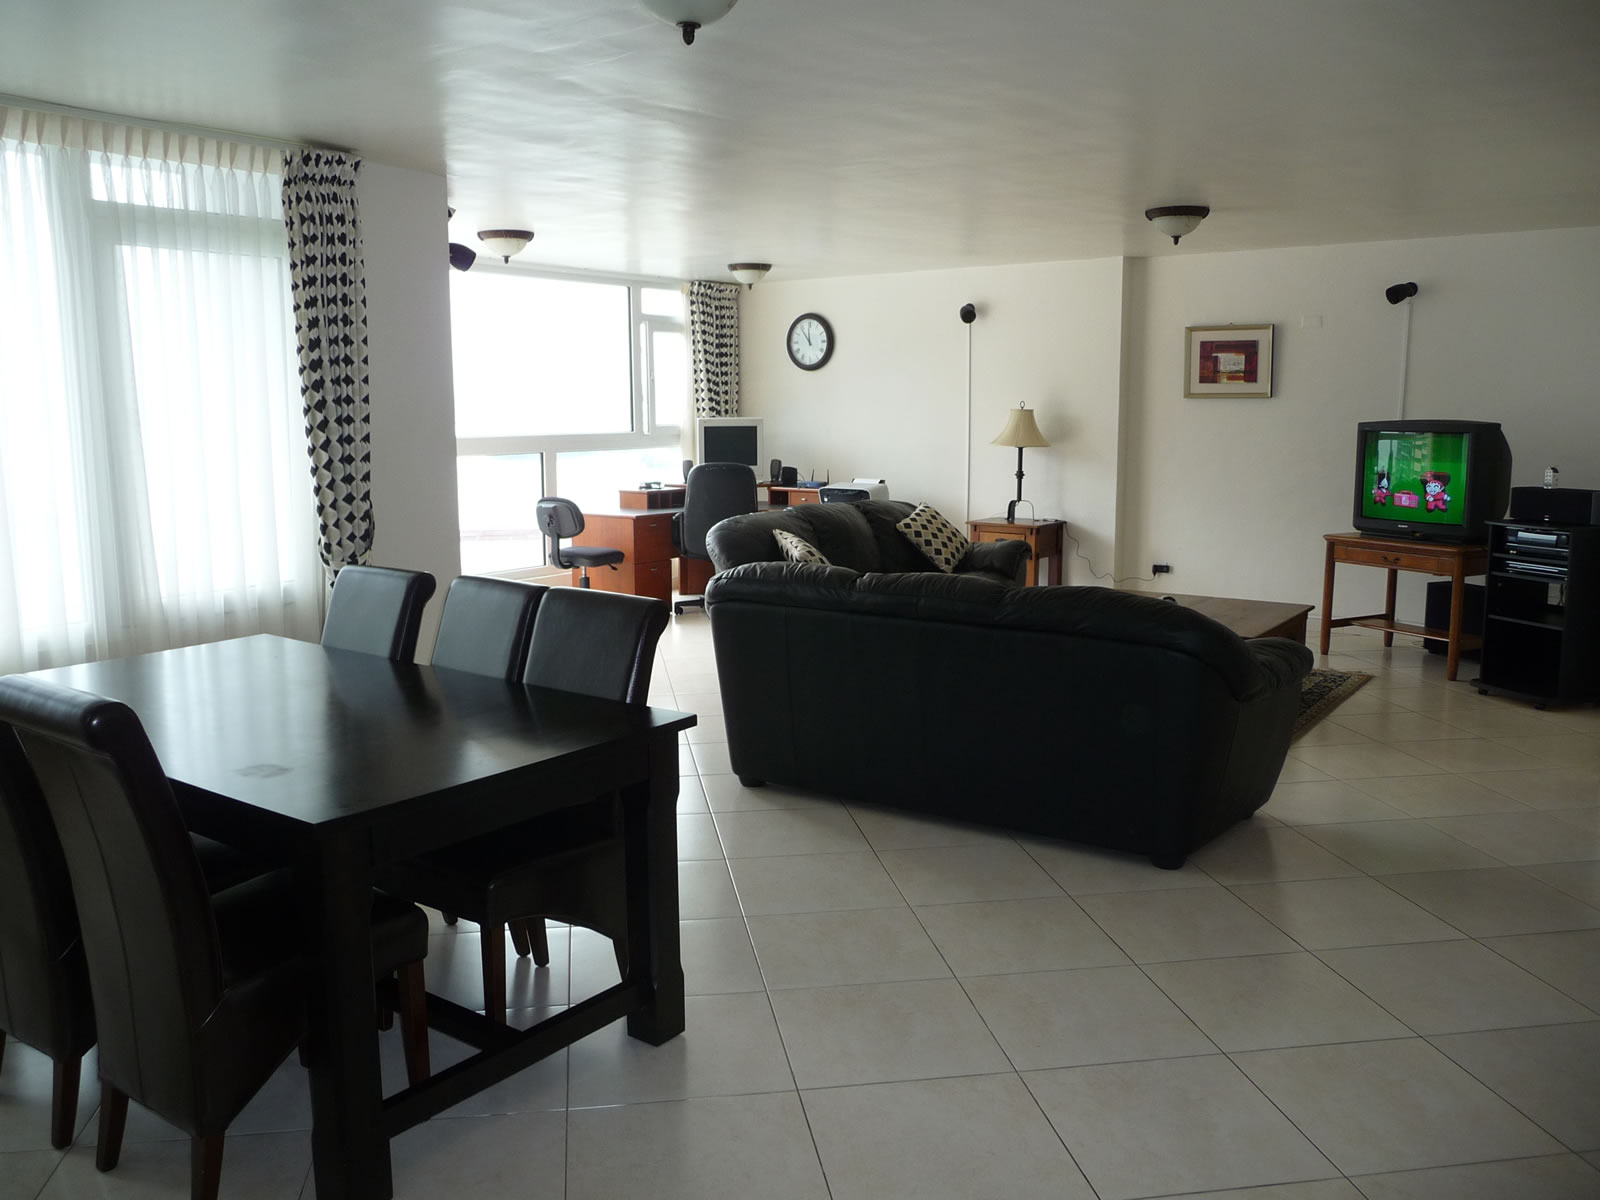 2 Bedroom Condos In Panama City 28 Images 2 Bedroom Oceanfront Condo For Sale Panama City